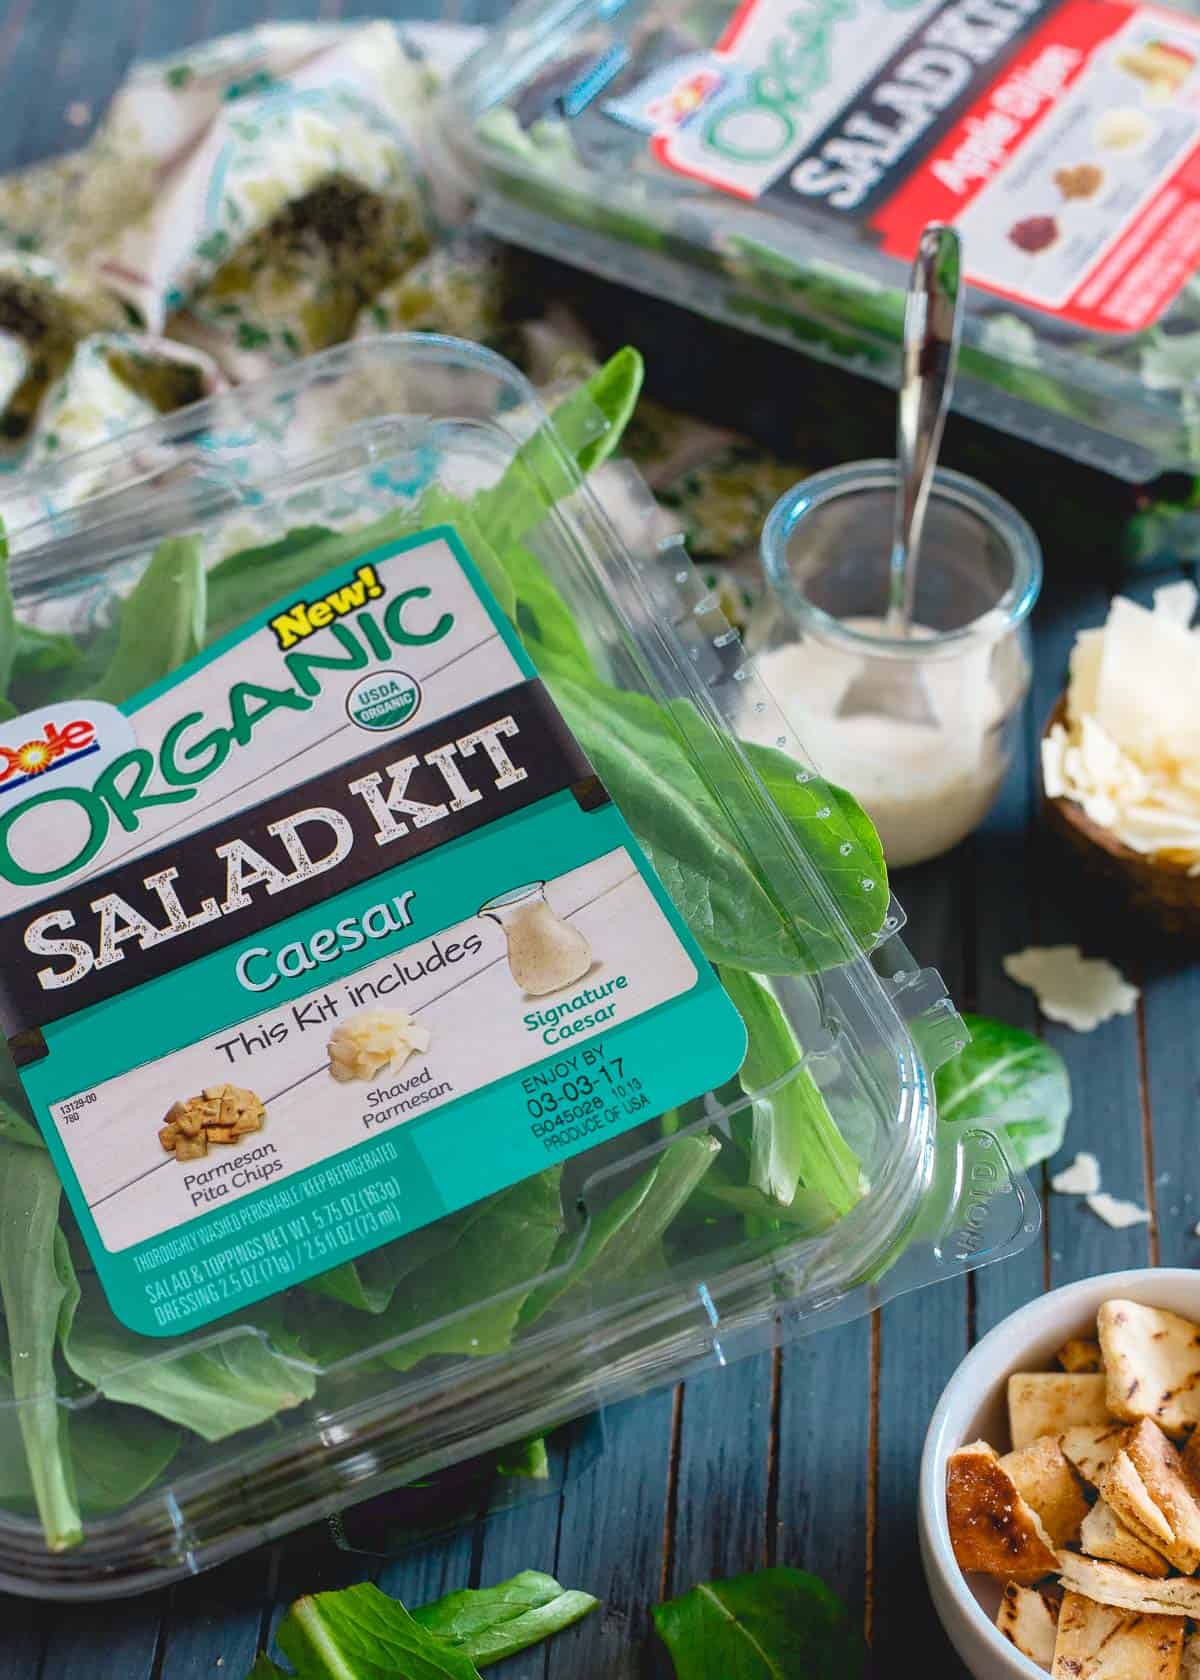 The caesar Dole organic salad kit is perfect for putting together these caesar salad stuffed sweet potatoes.